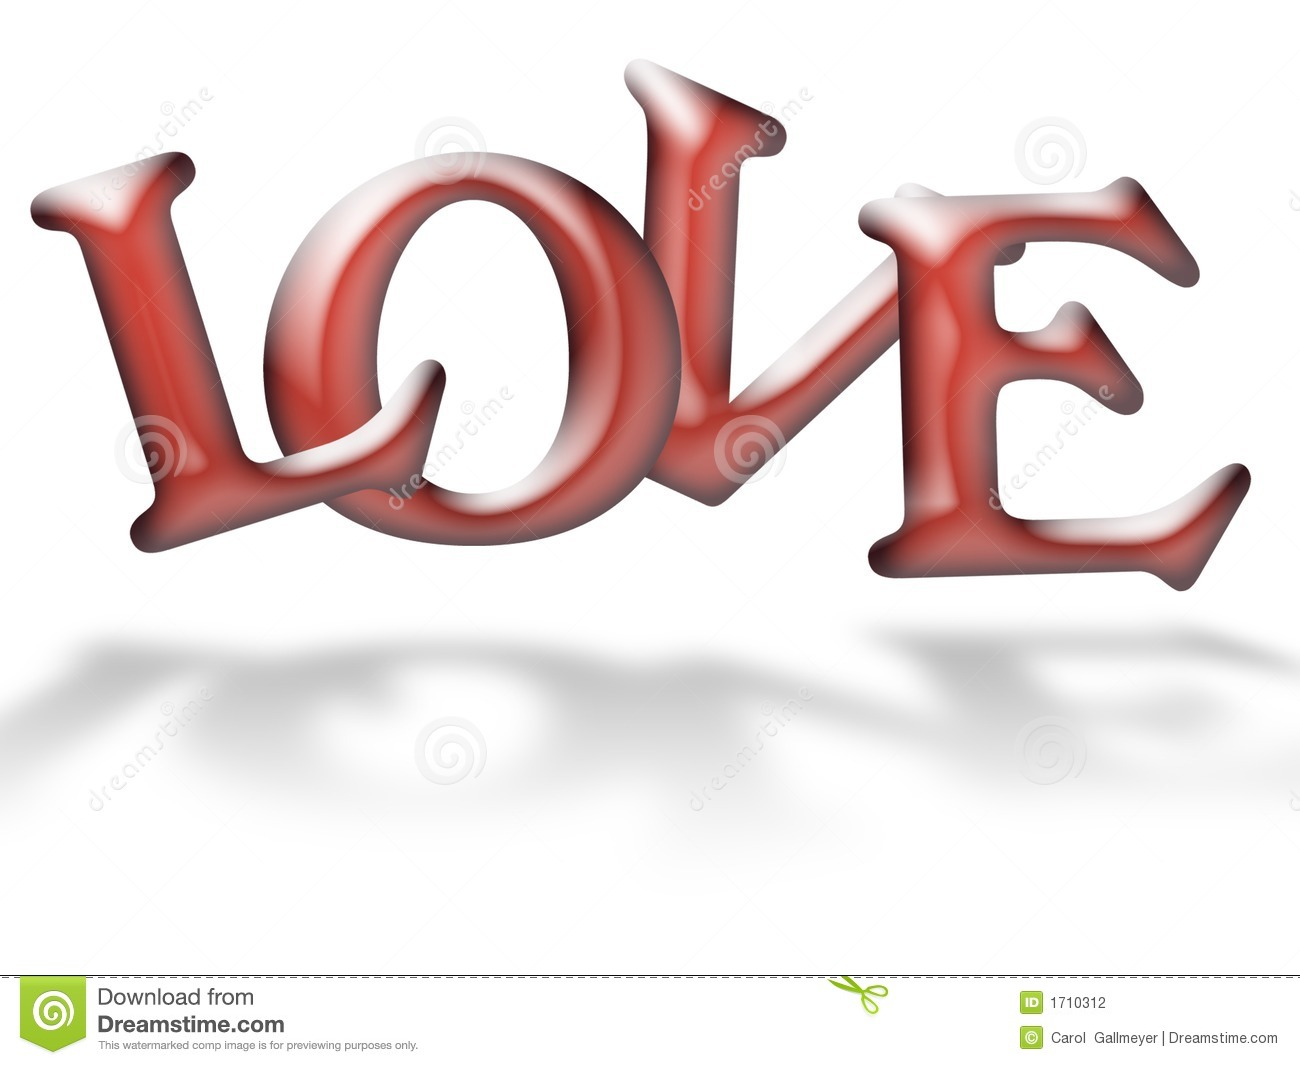 gel  or jell...E Letter Images Love